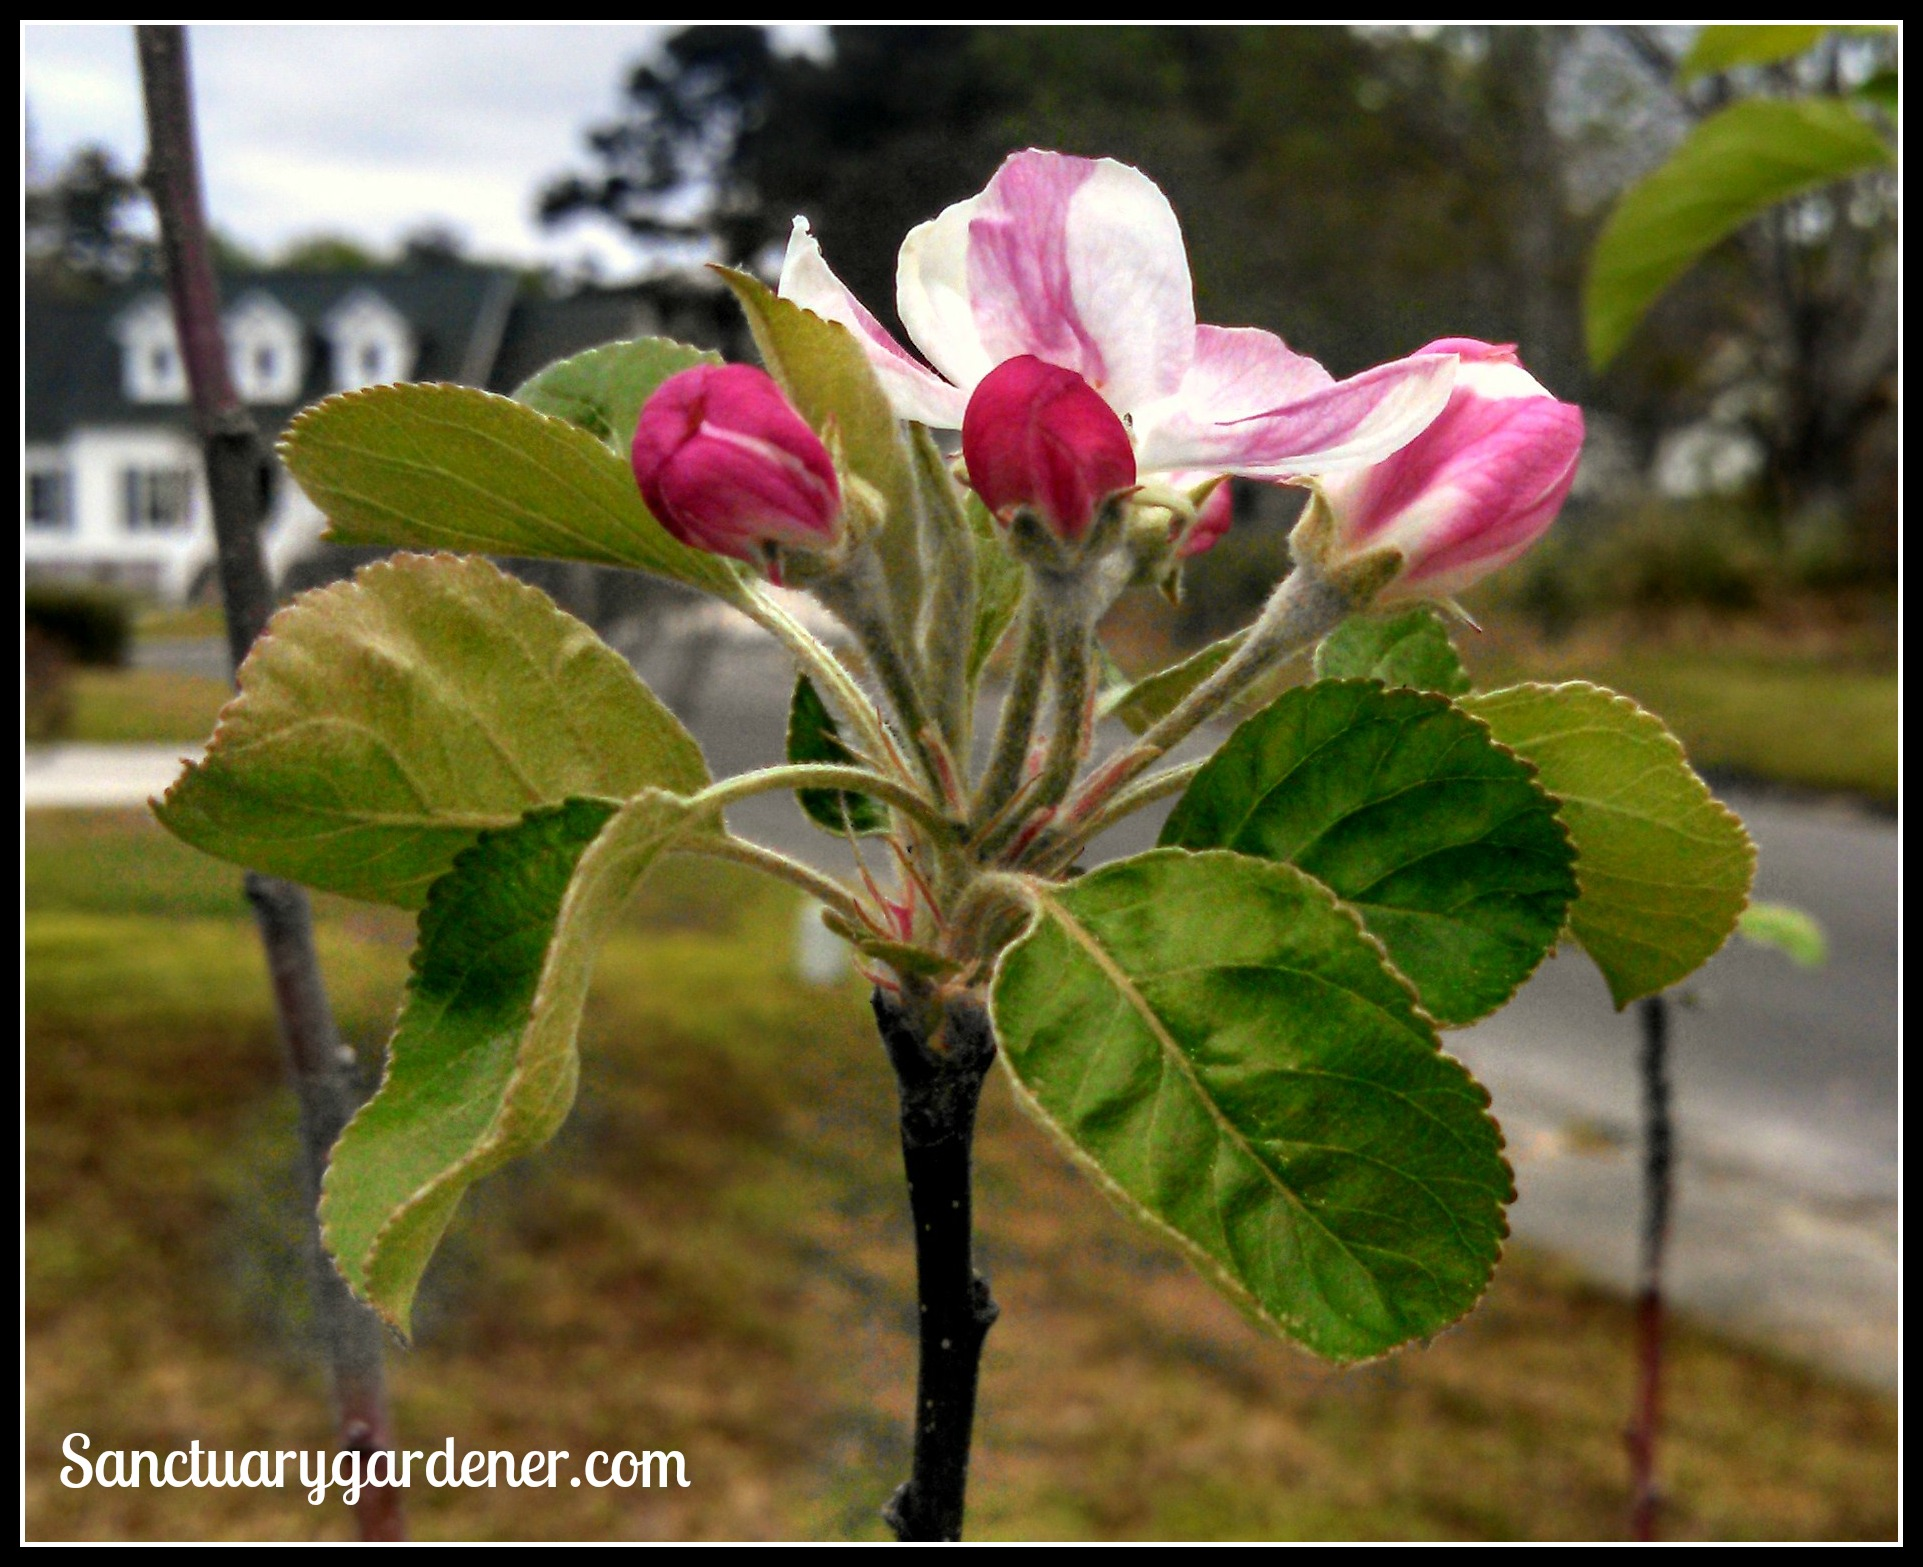 My First Apple Blossoms Sanctuary Gardener